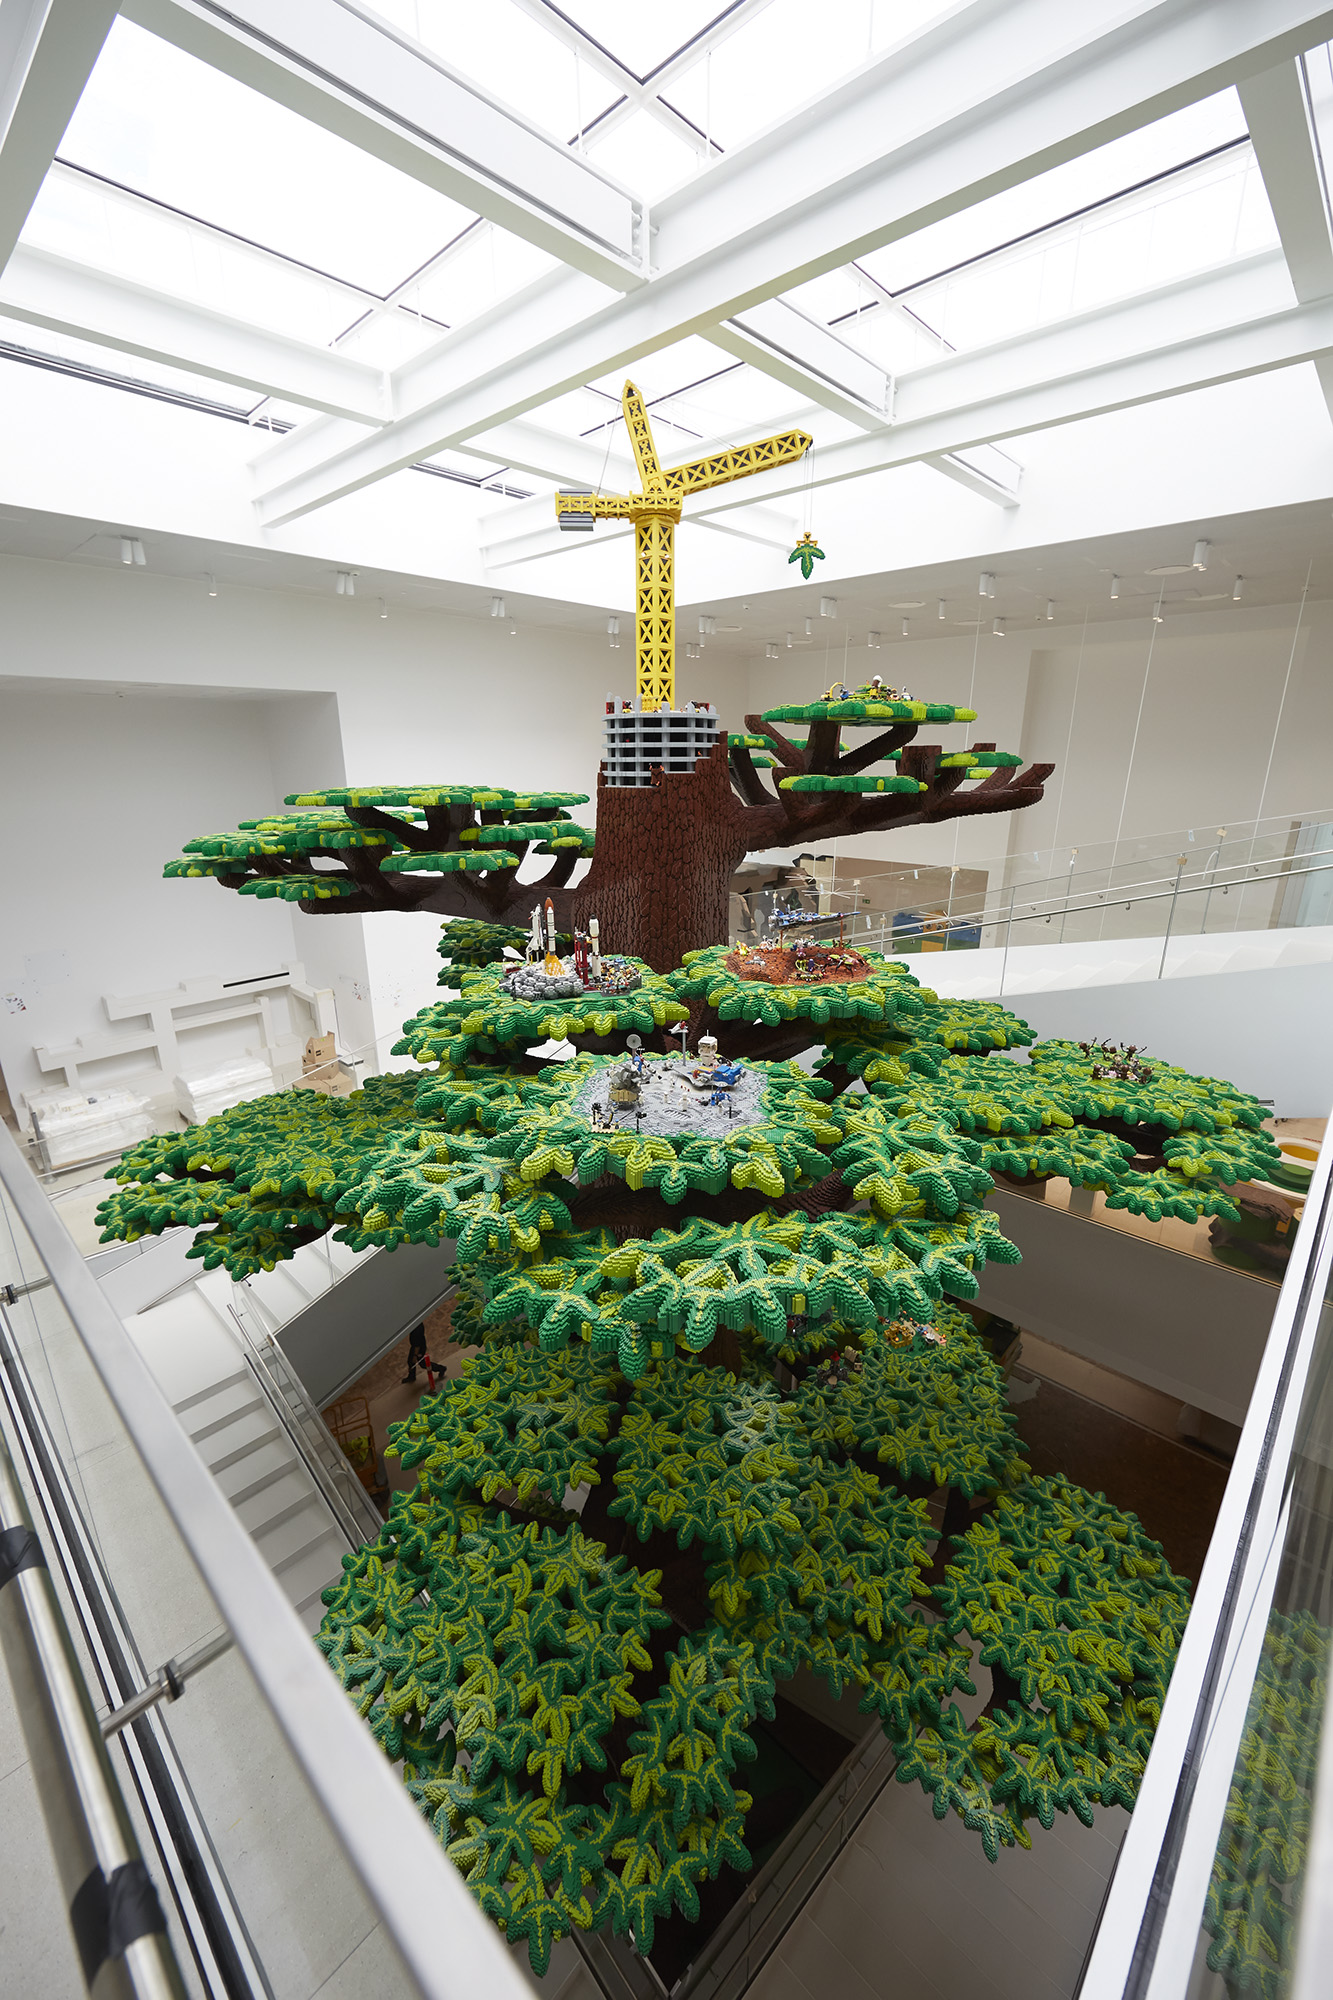 Lego House' designed by Bjarke Ingels will open in September - Curbed